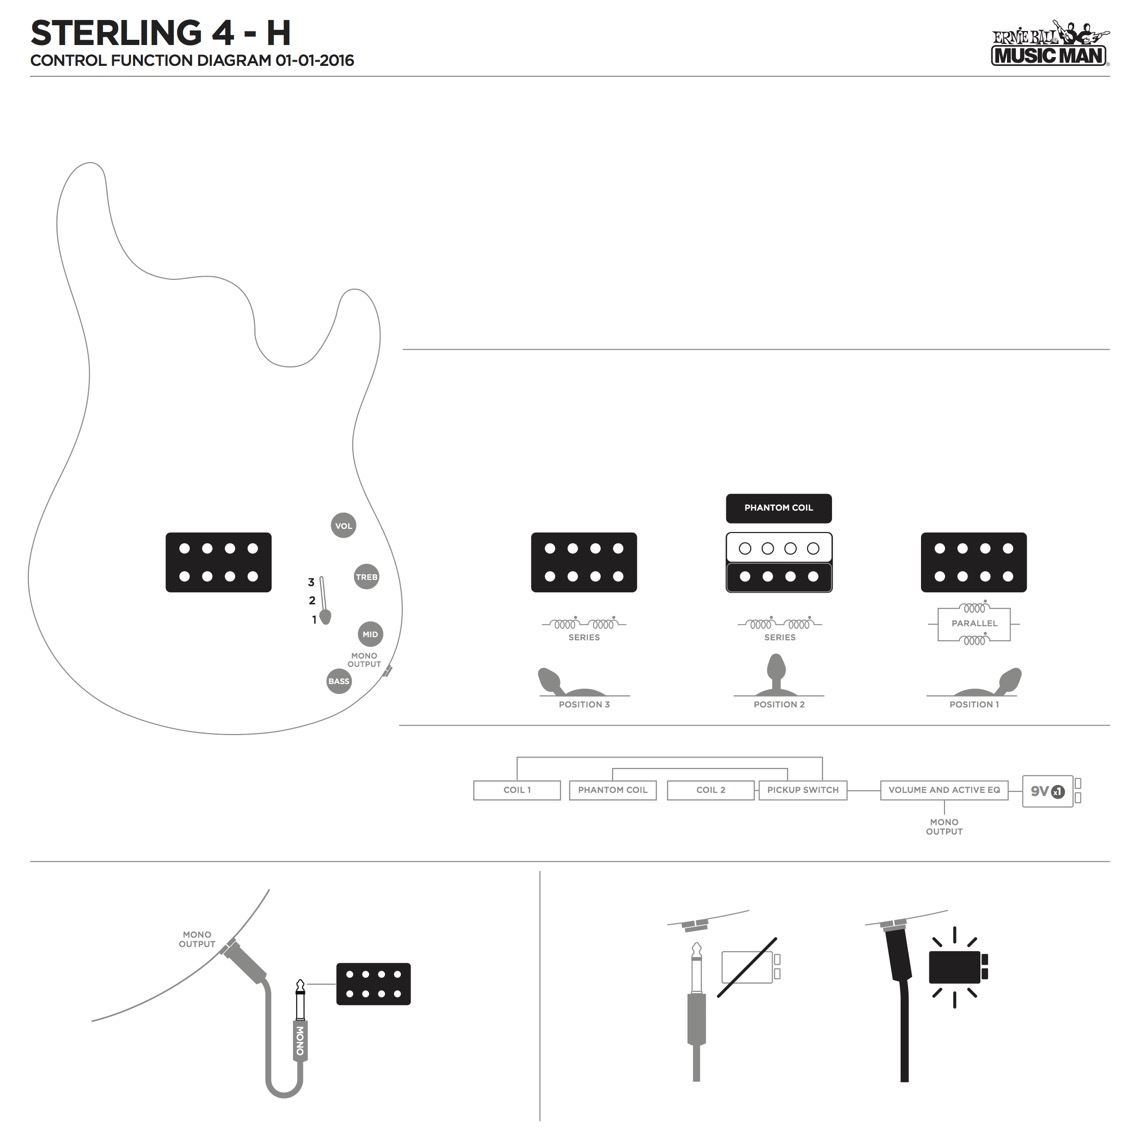 music man sterling hh wiring diagram best wiring diagram music man sterling hh wiring diagram [ 1140 x 1140 Pixel ]